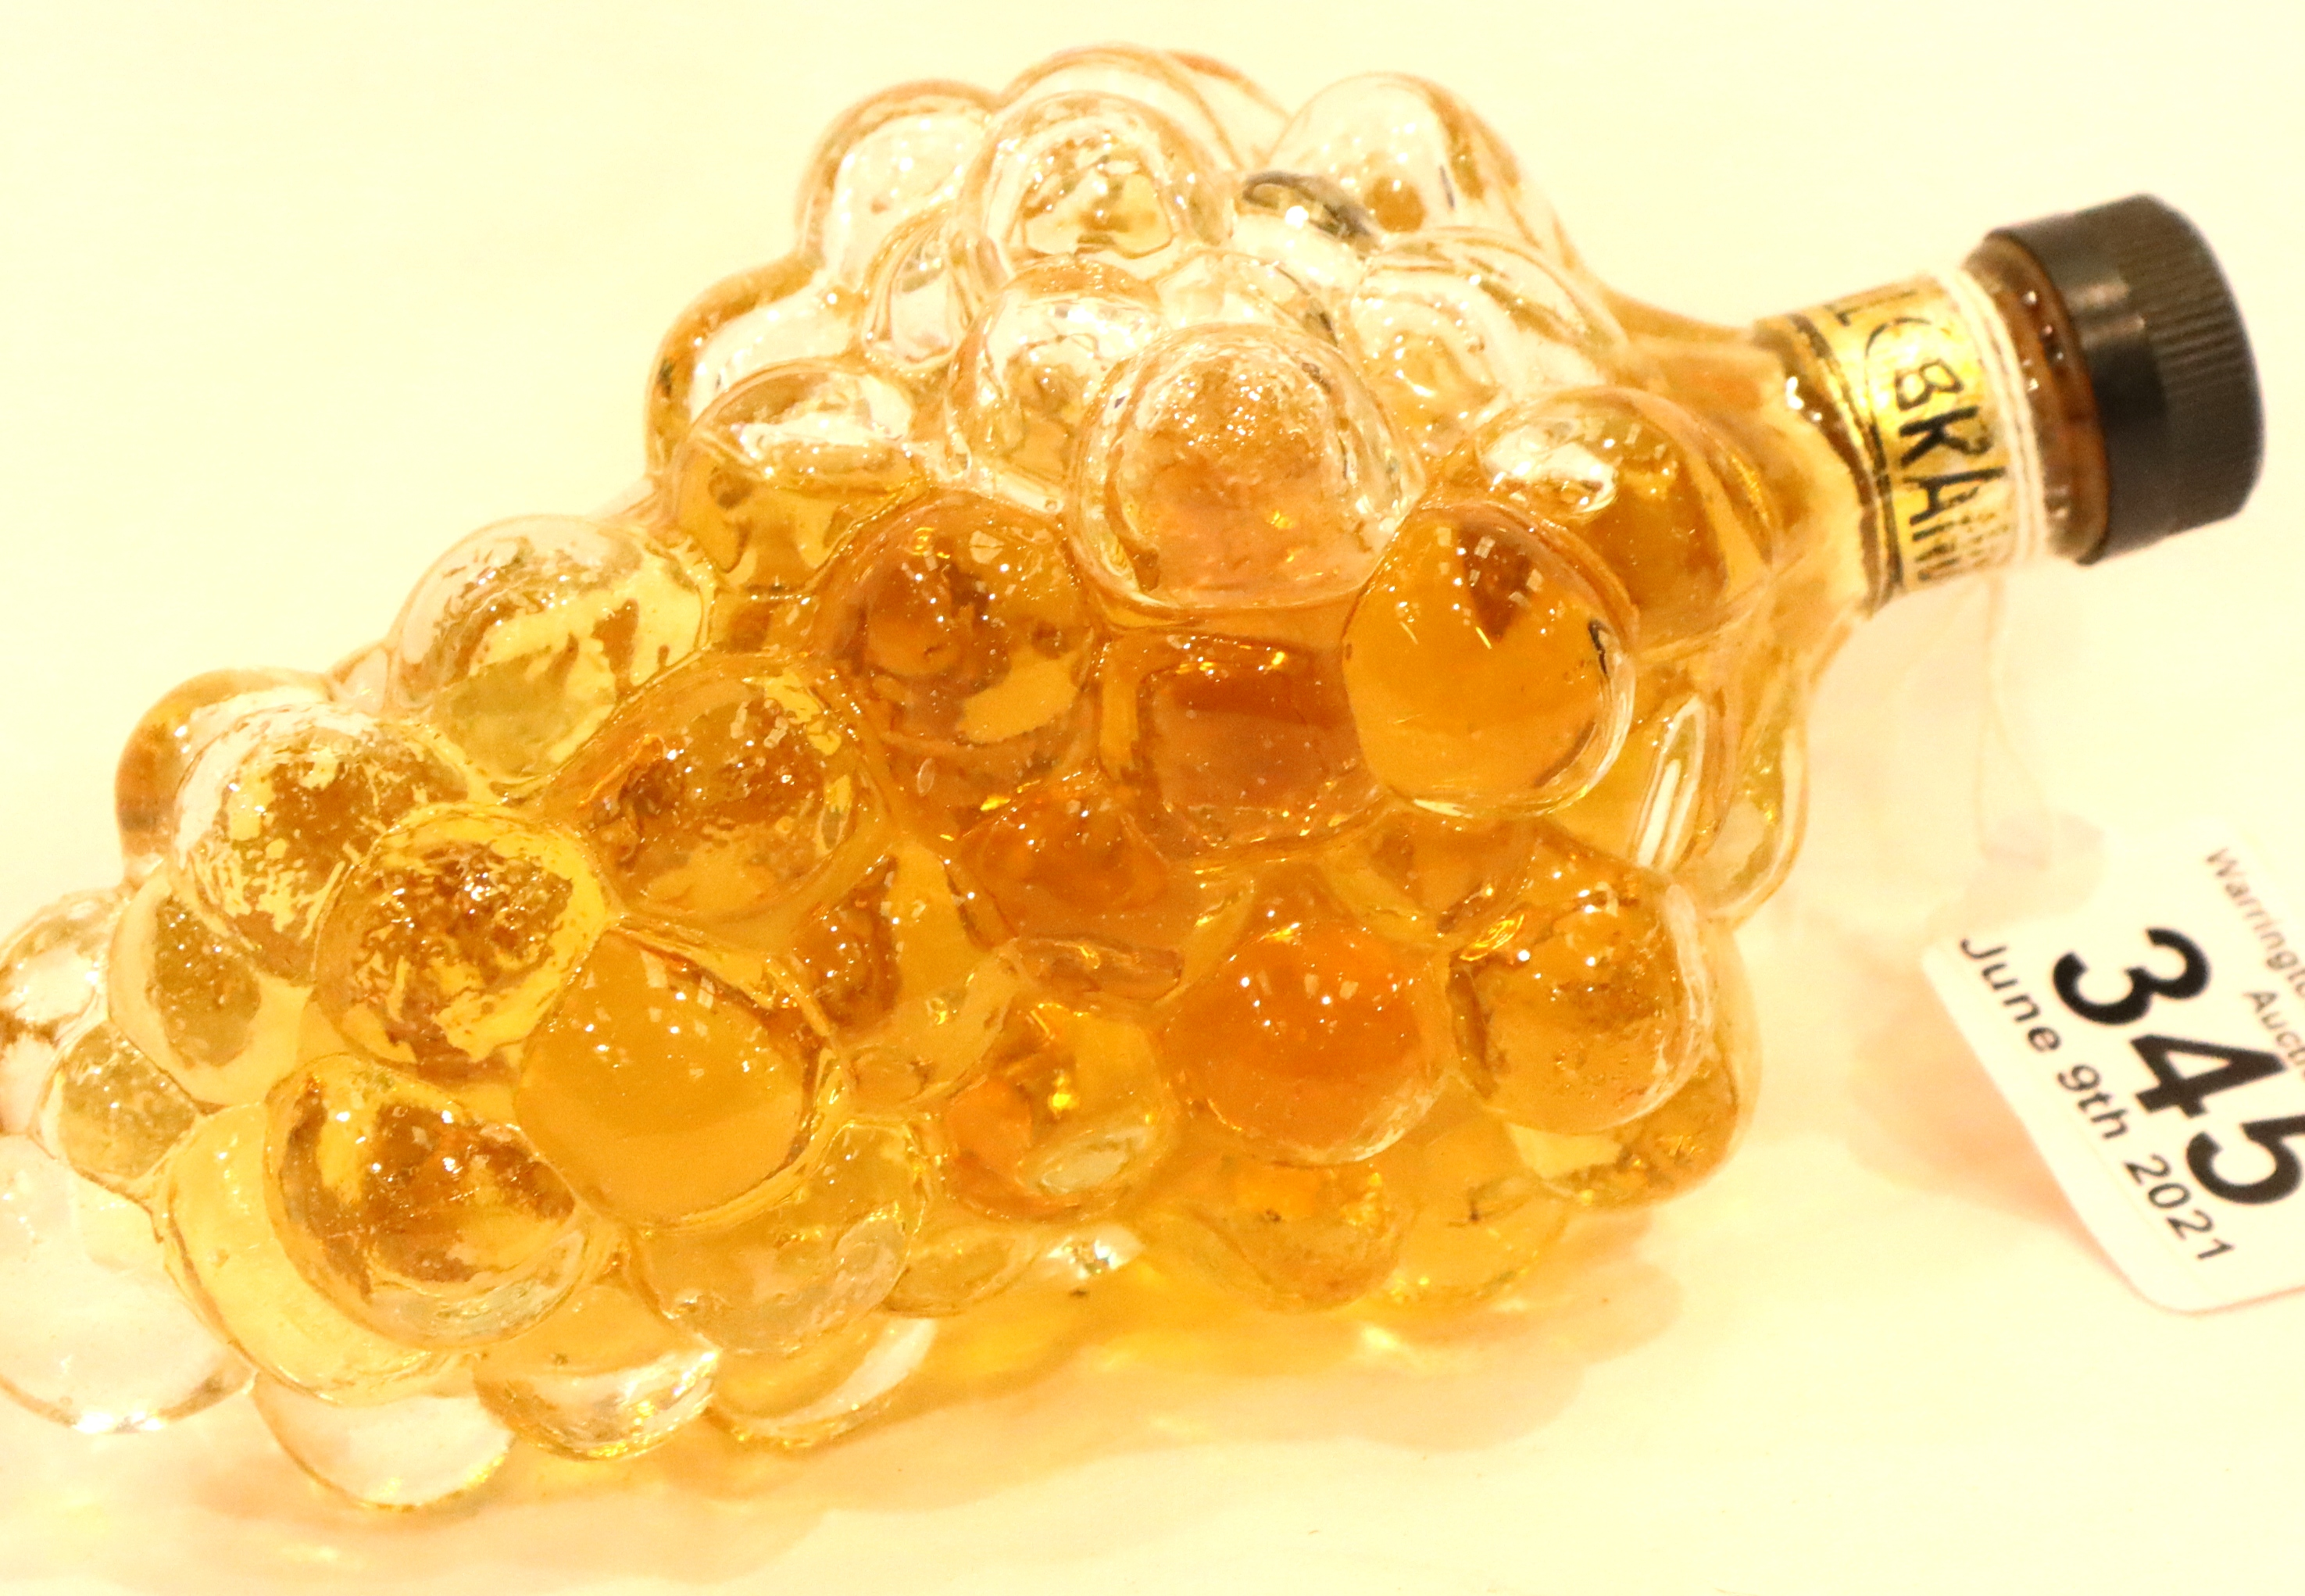 Full brandy bottle in the form of grapes. P&P Group 3 (£25+VAT for the first lot and £5+VAT for